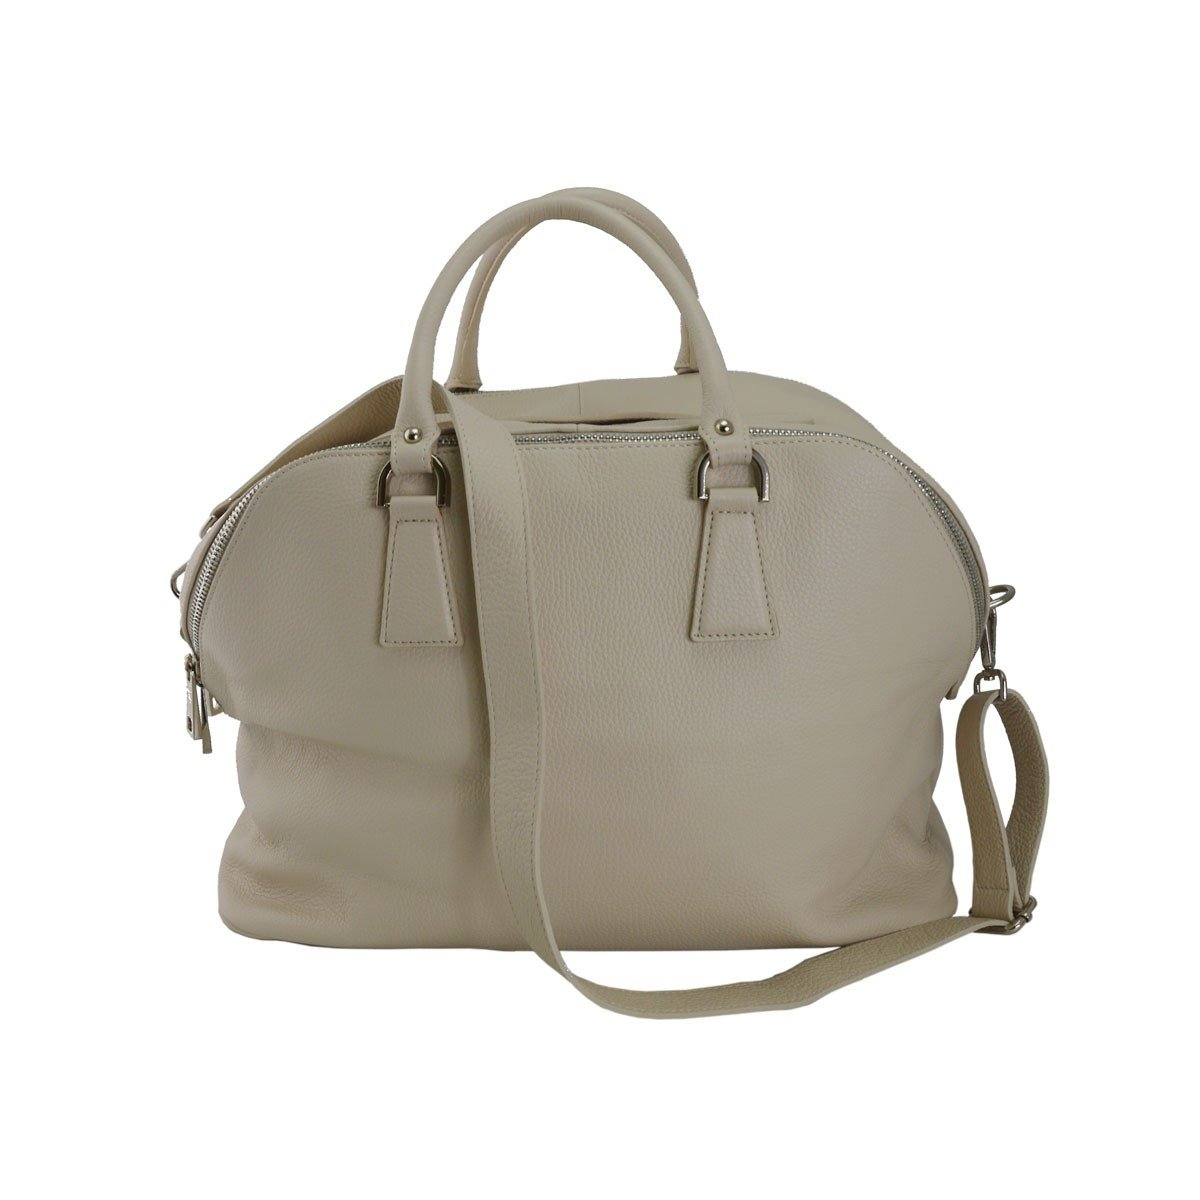 Dream Leather Bags Made in Italy Genuine Leather メンズ 554-16 US サイズ: 1 M US カラー: ベージュ B07C3RDKYW